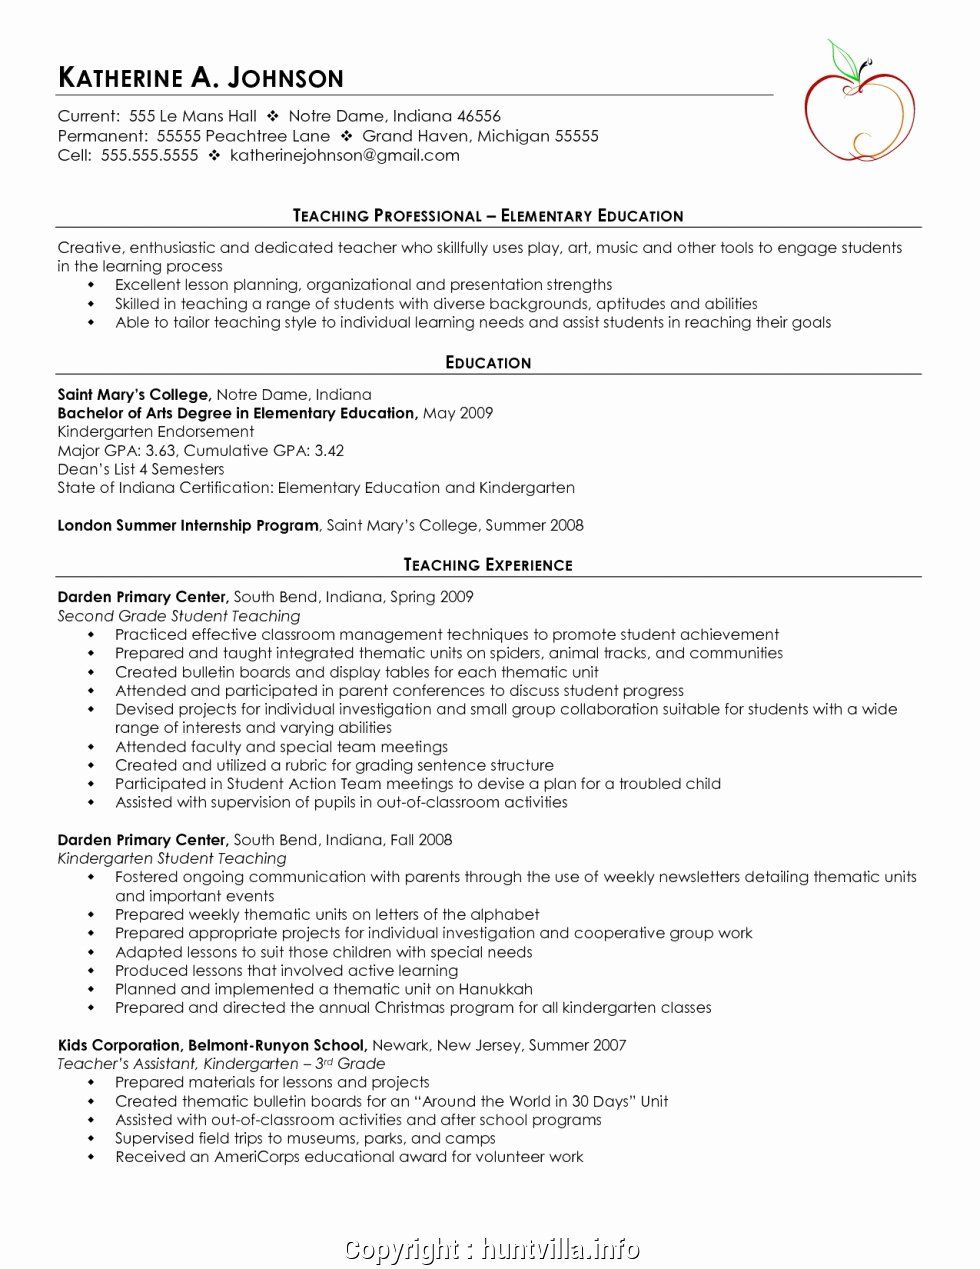 Restaurant Server Resume Examples Beautiful Print Restaura Kindergarten Lesson Plans Template Lesson Plans Template High School Teaching Lesson Plans Templates